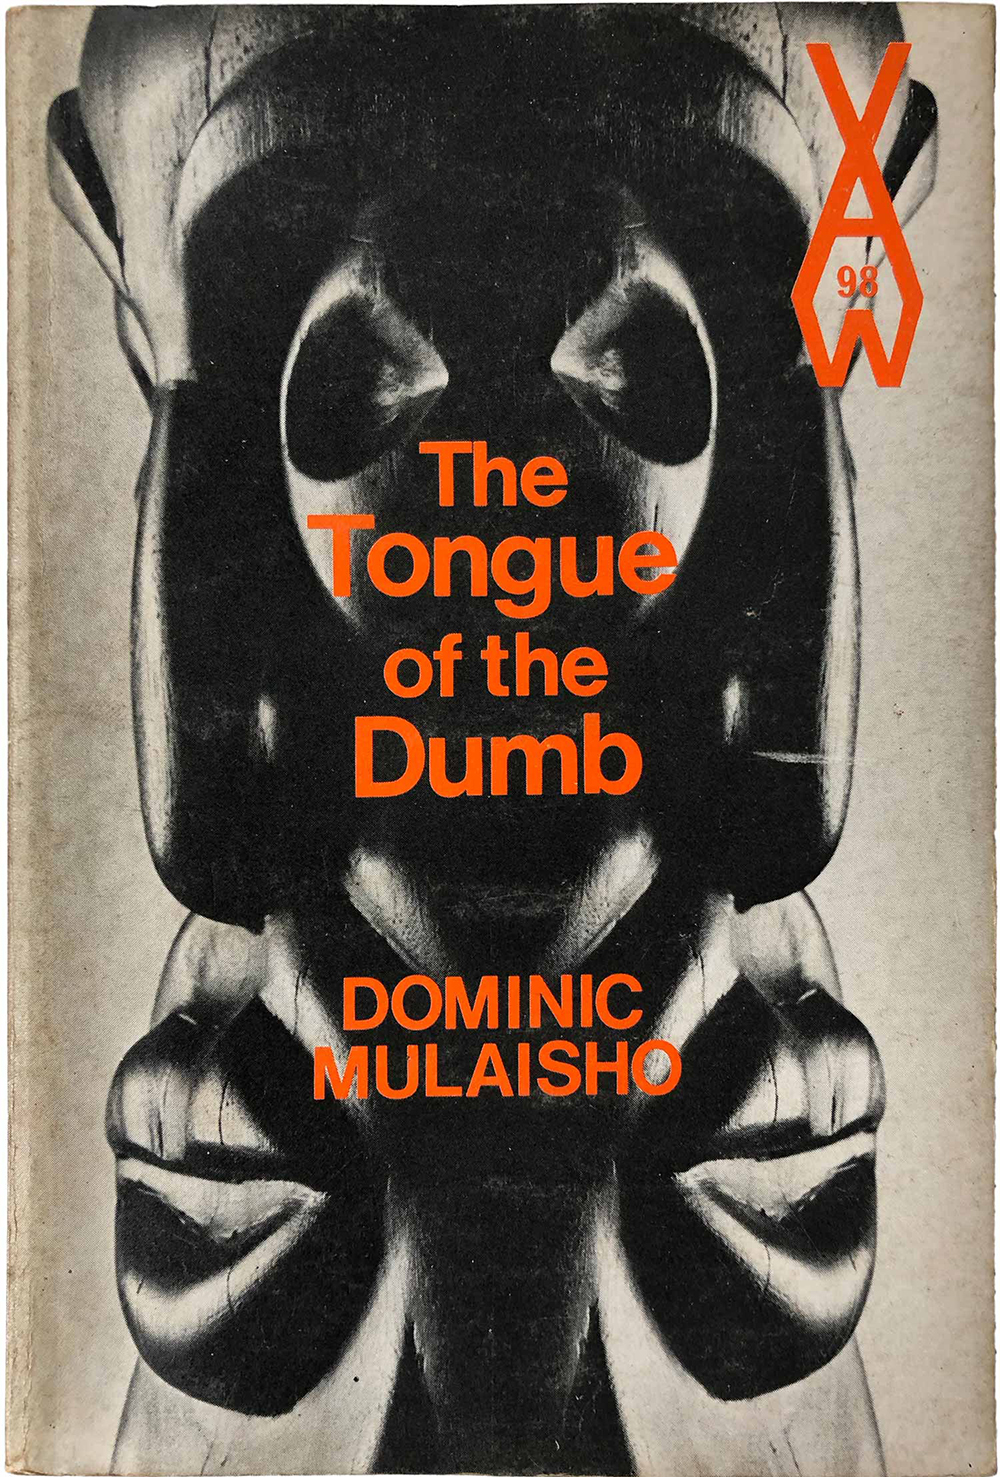 """Tongue of the Dumb,"" by Dominic Mulaisho (AWS 98, 1971)."